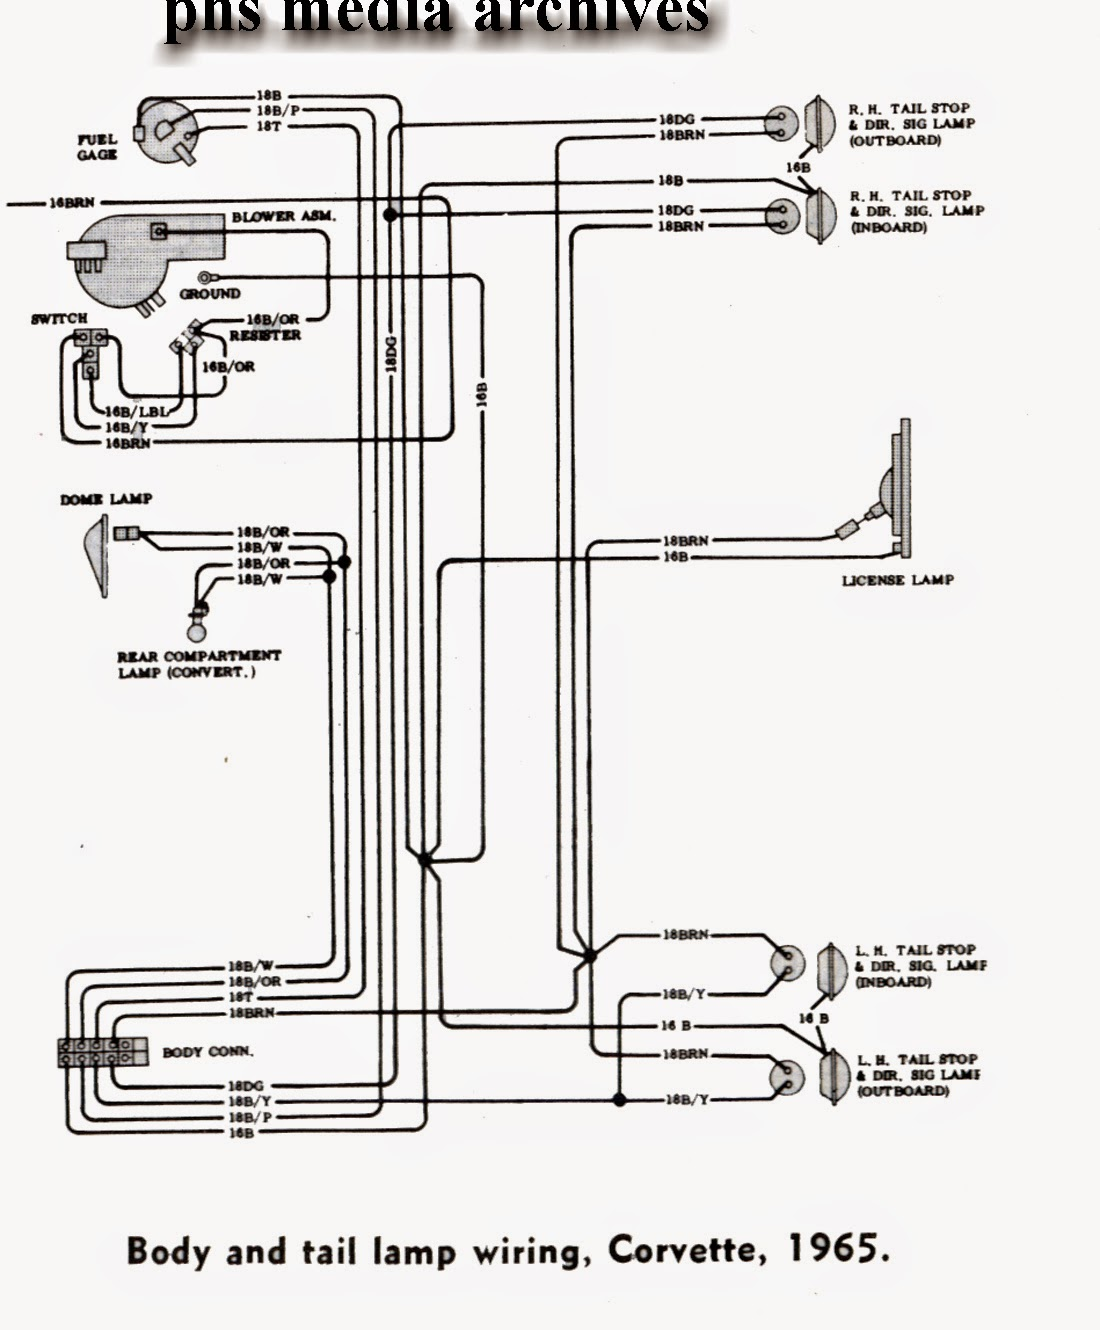 1965 Corvette Fuse Box Diagram 1981 Tech Series Chevrolet Wiring Diagrams Engine Rh Phscollectorcarworld Blogspot Com 1996